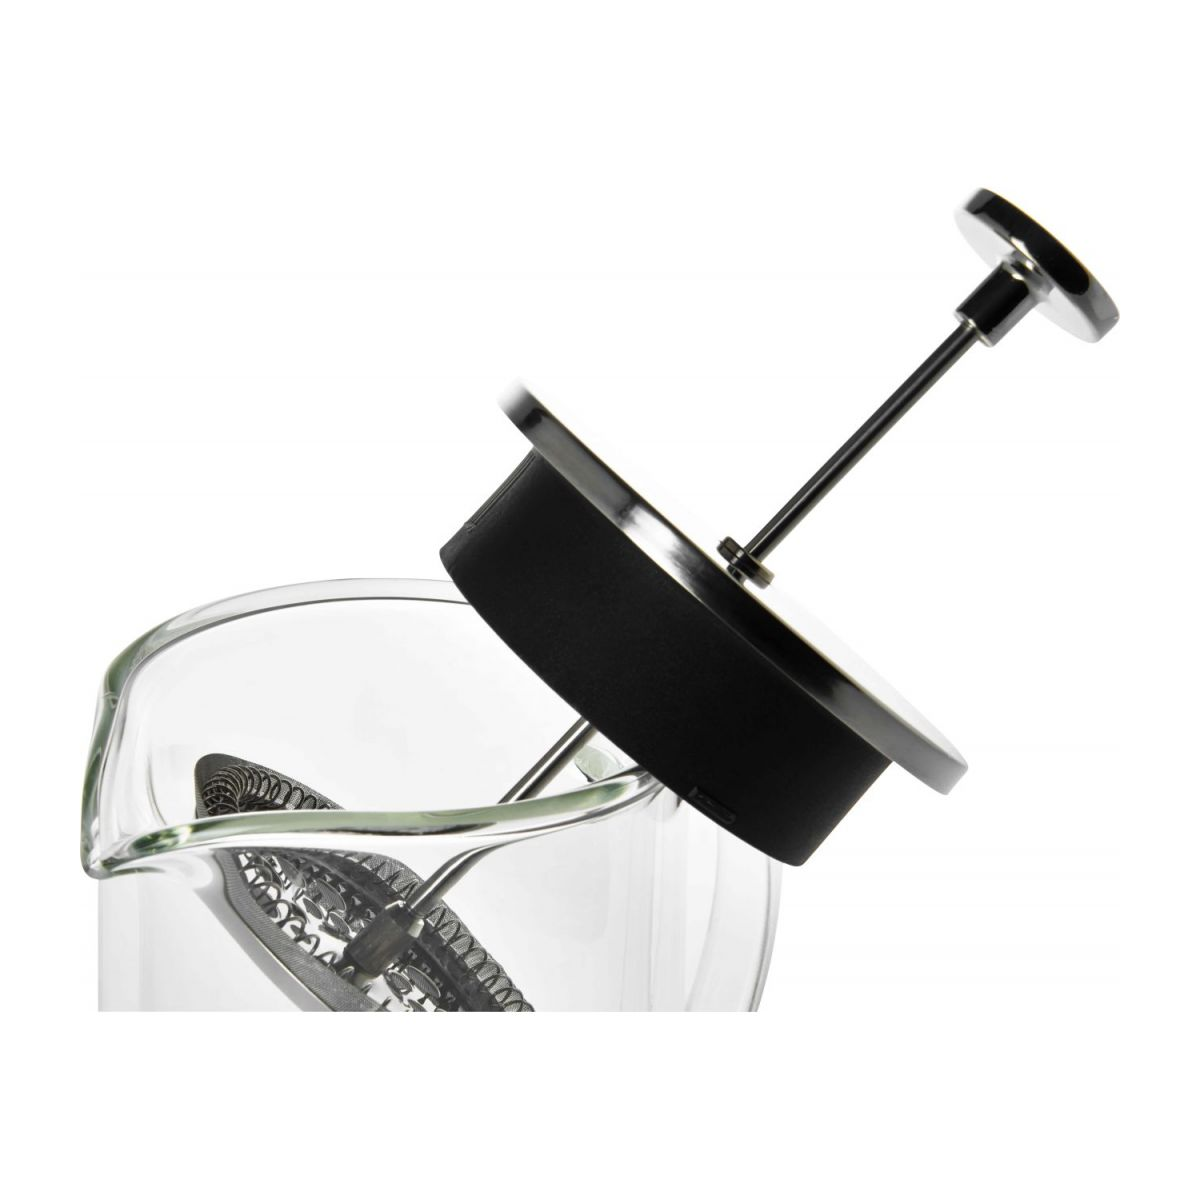 800ml French press coffee maker n°7